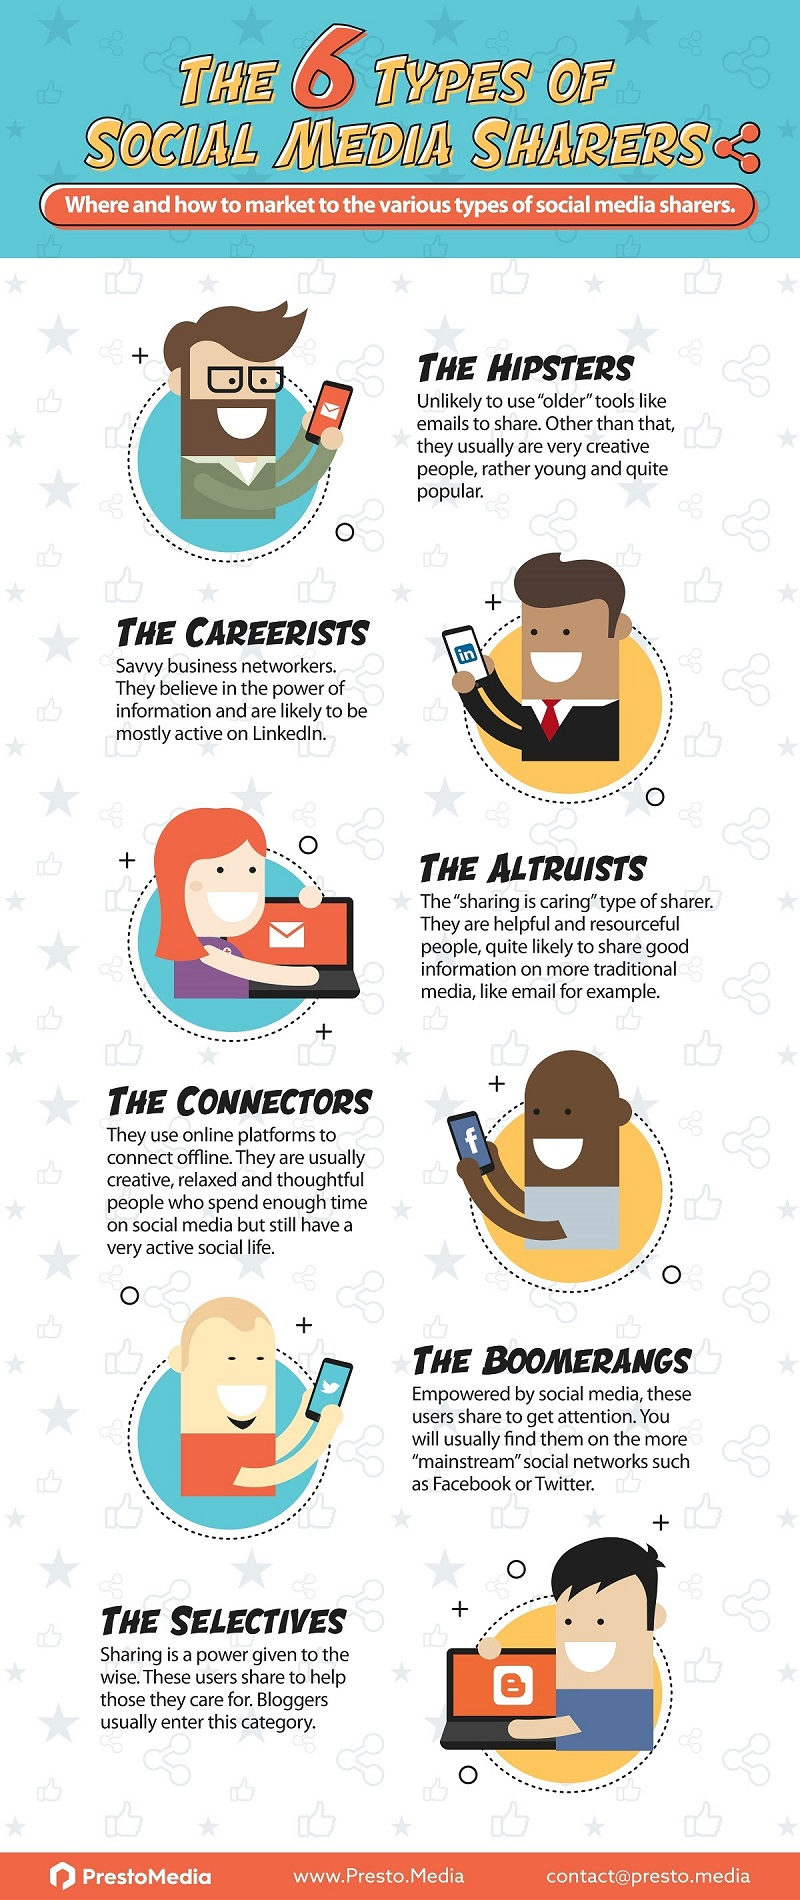 6 Types of Social Media Sharers